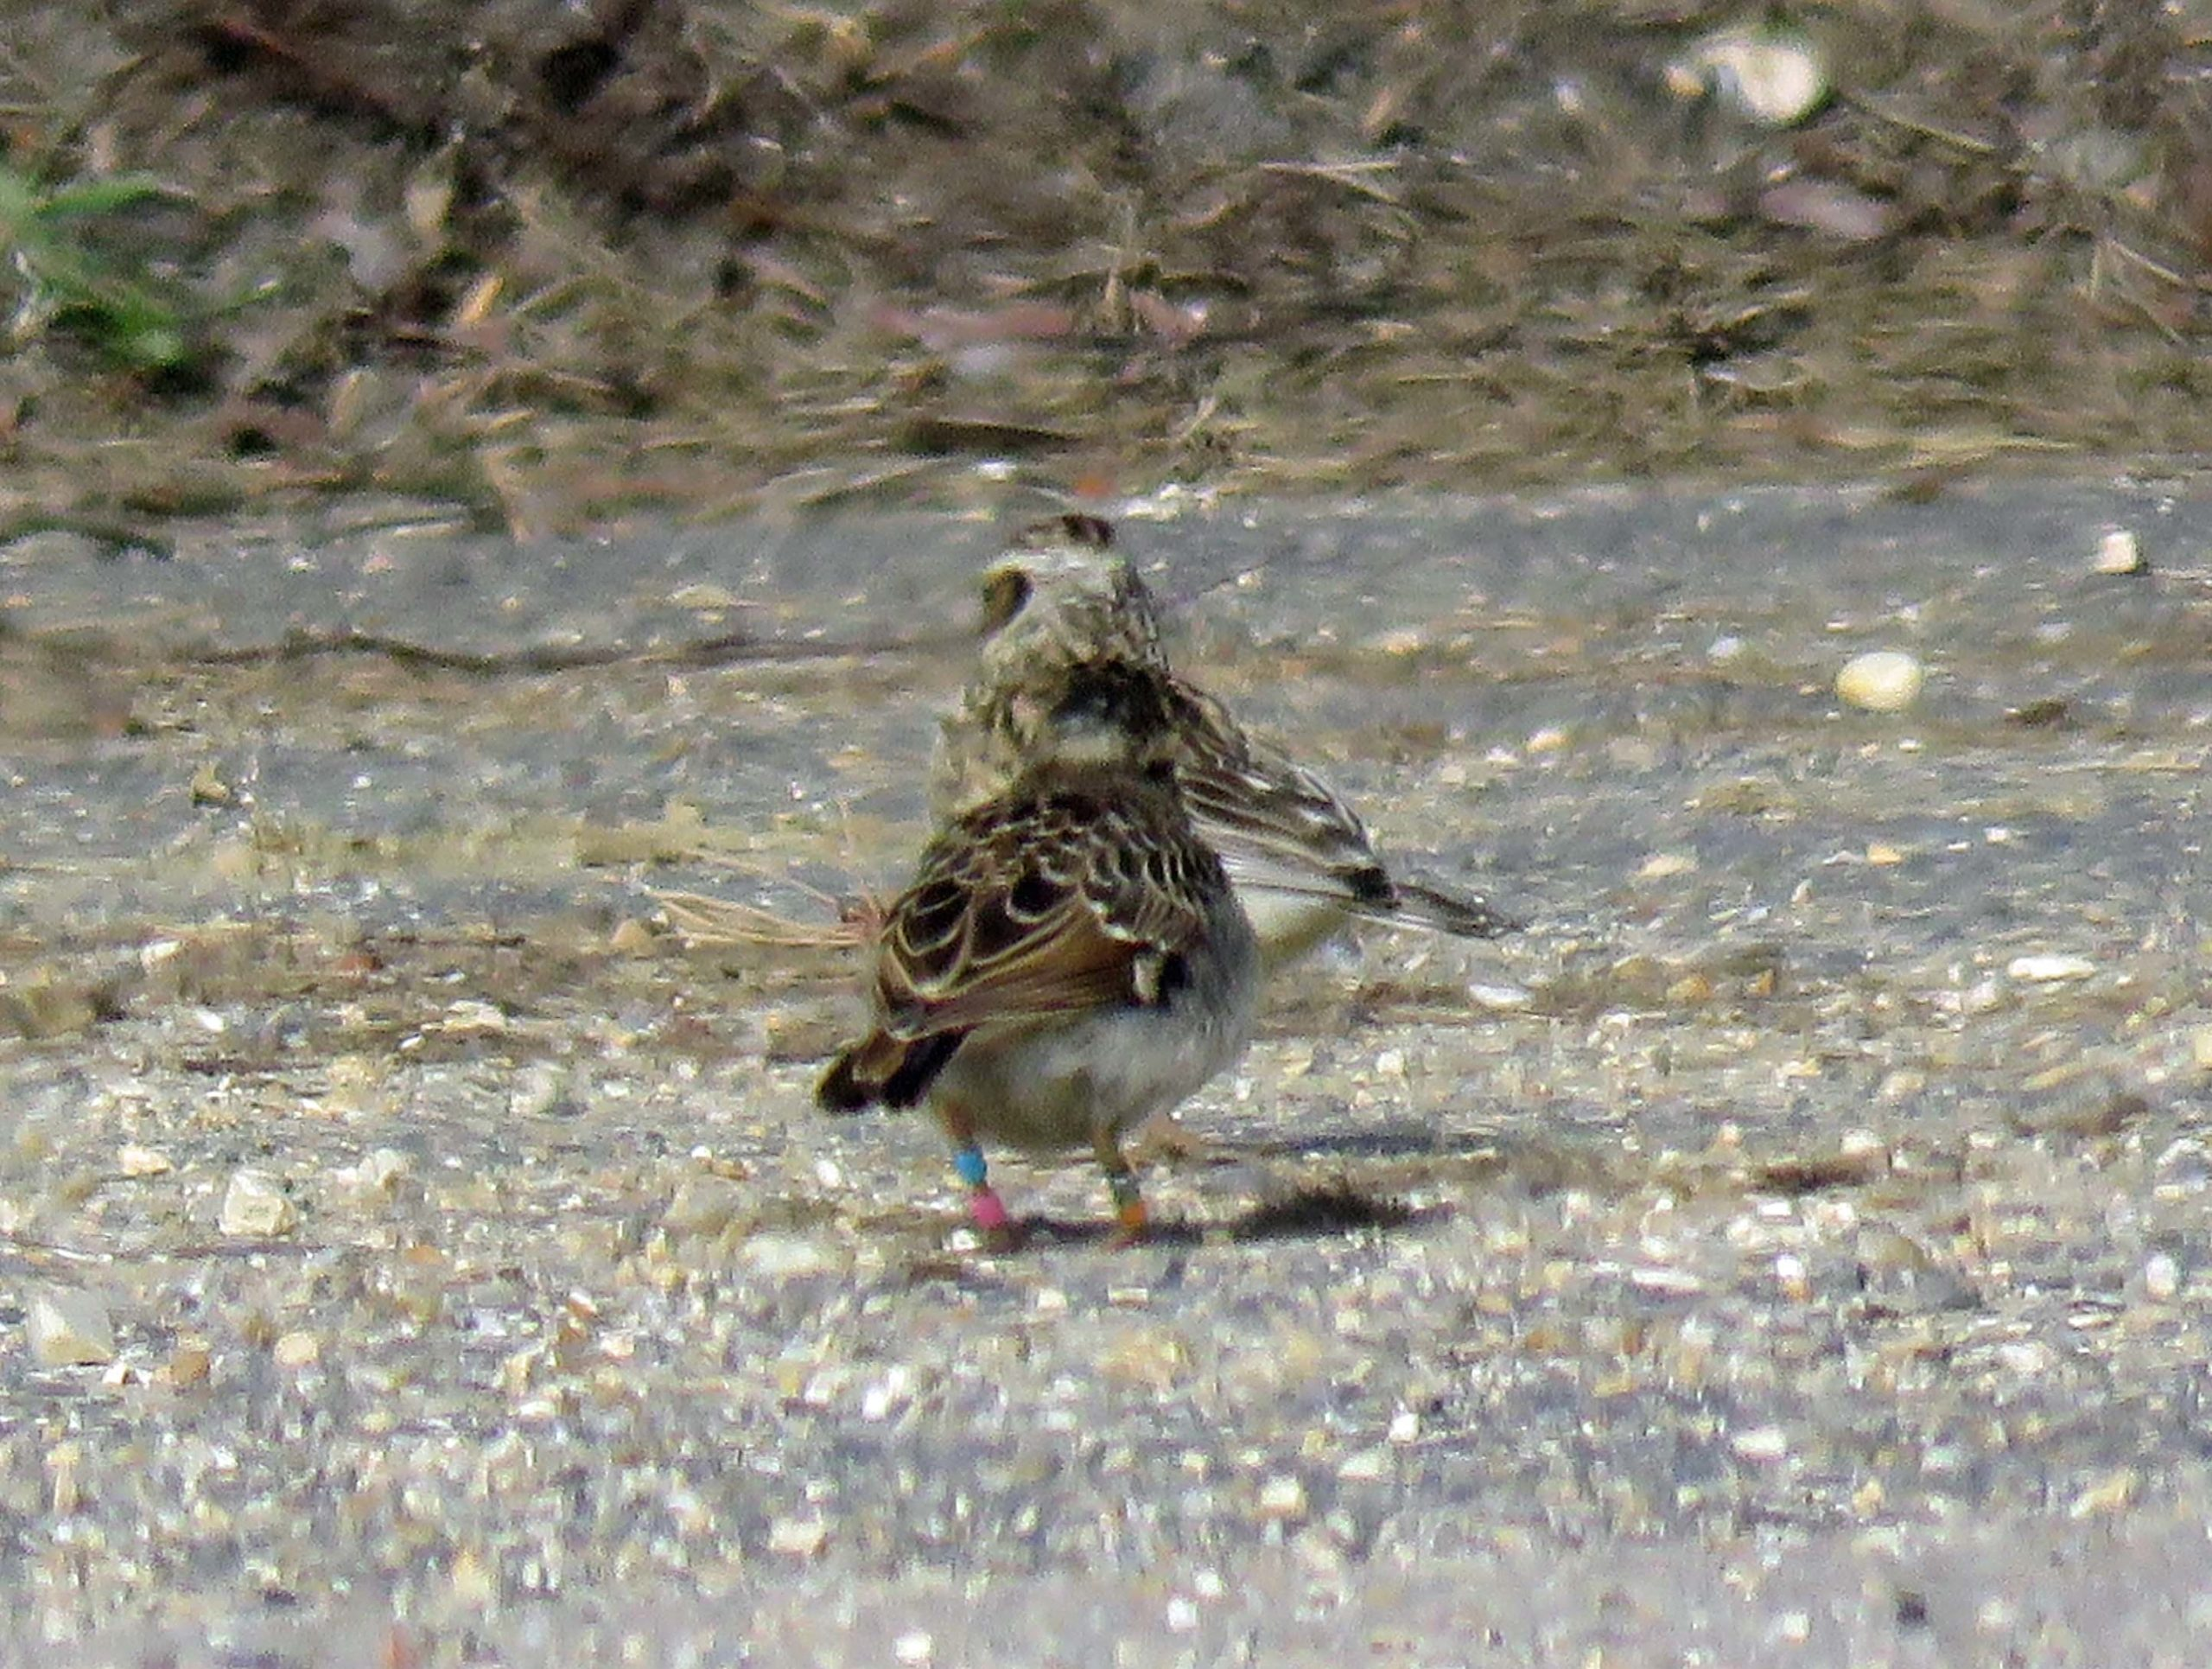 Slightly blurred photograph of a young woodlark and its parent. Coloured rings visible on the young bird's legs.